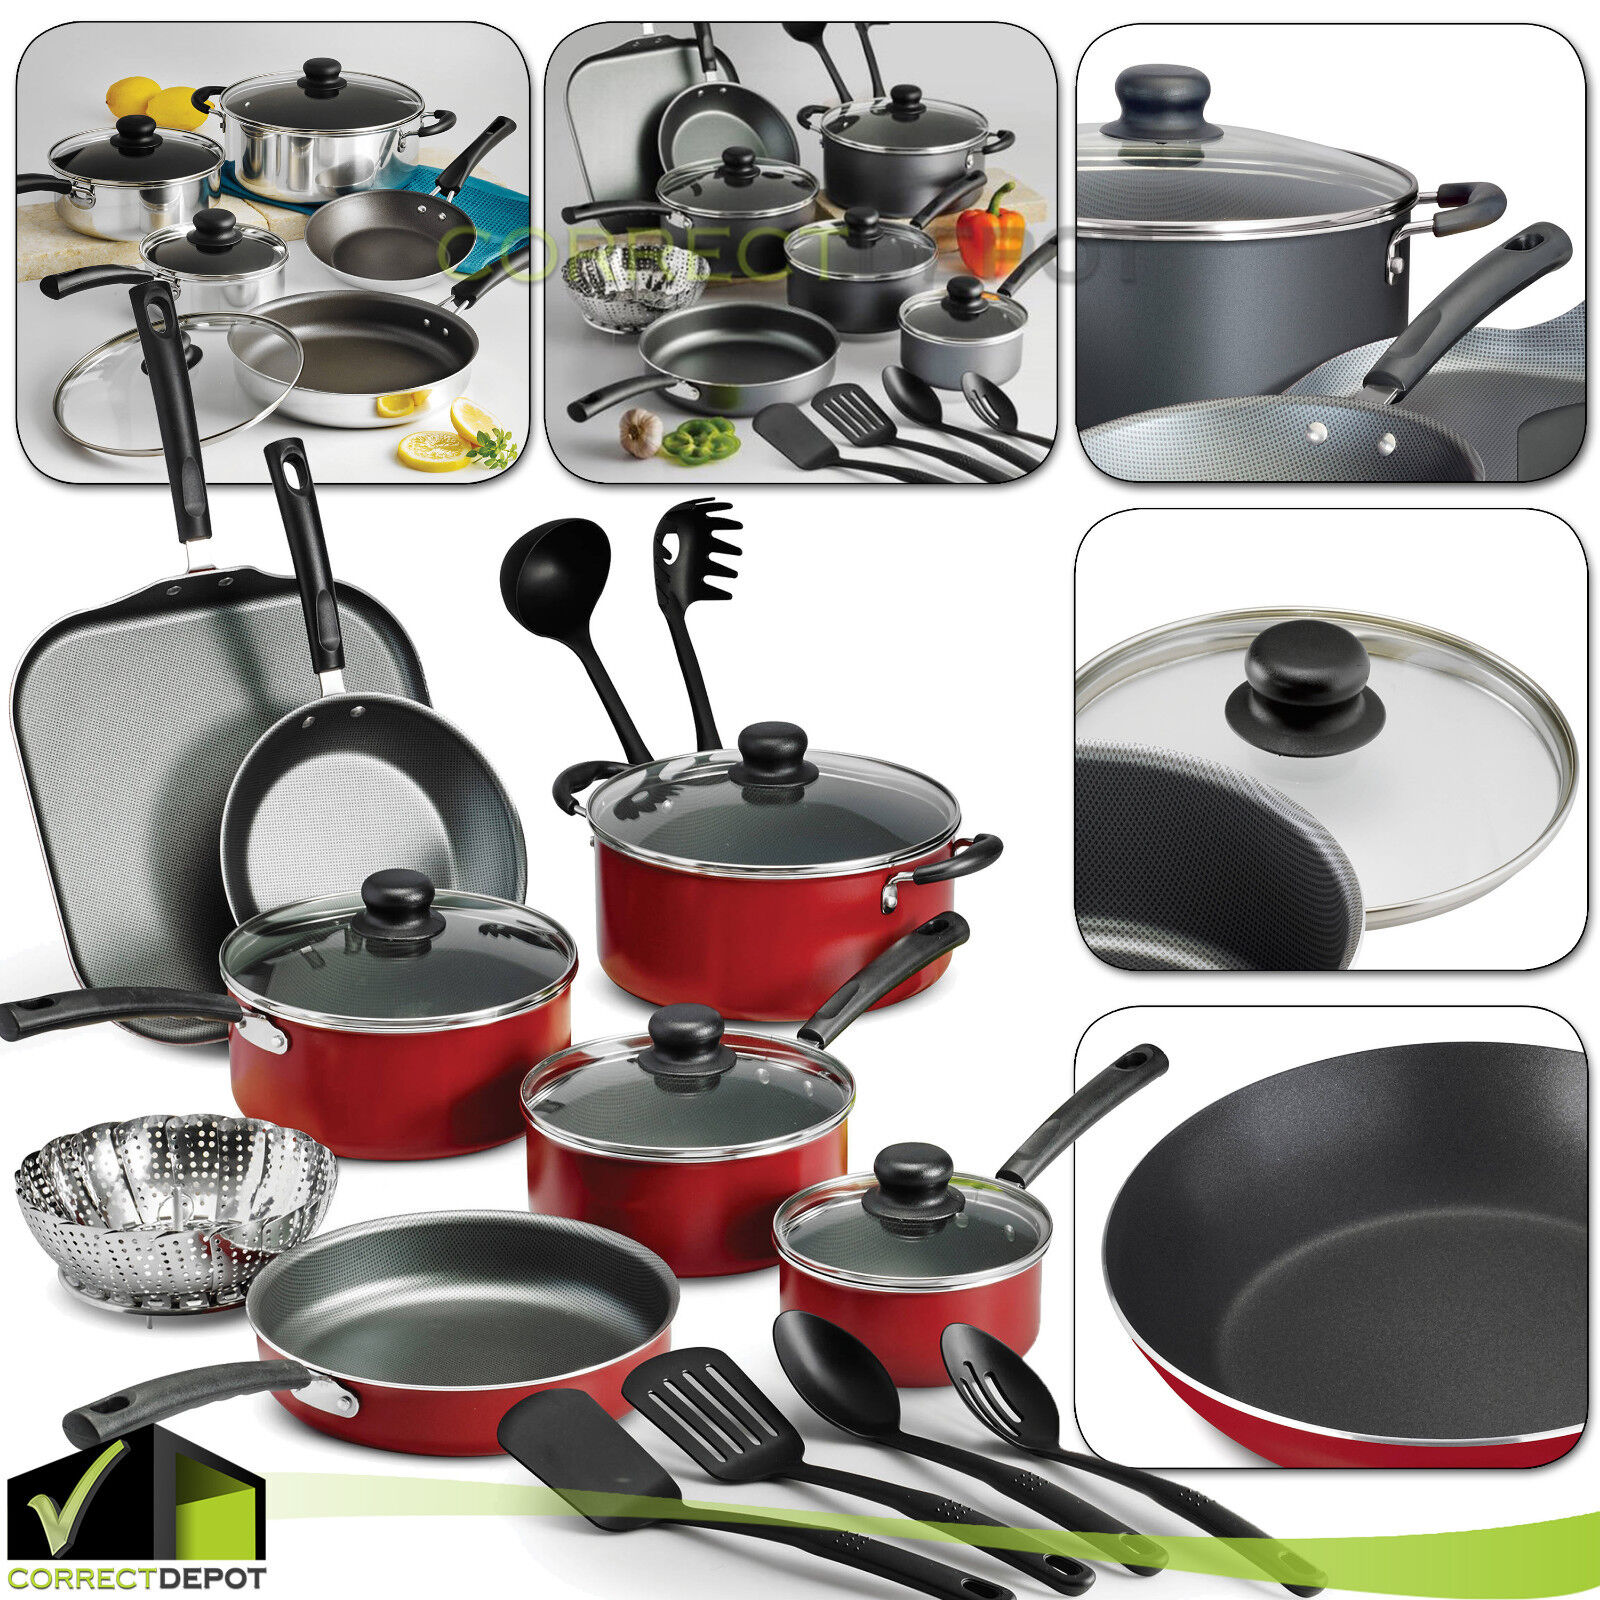 NONSTICK COATED 9/18 Piece Pots & Pans Cookware Set Polished